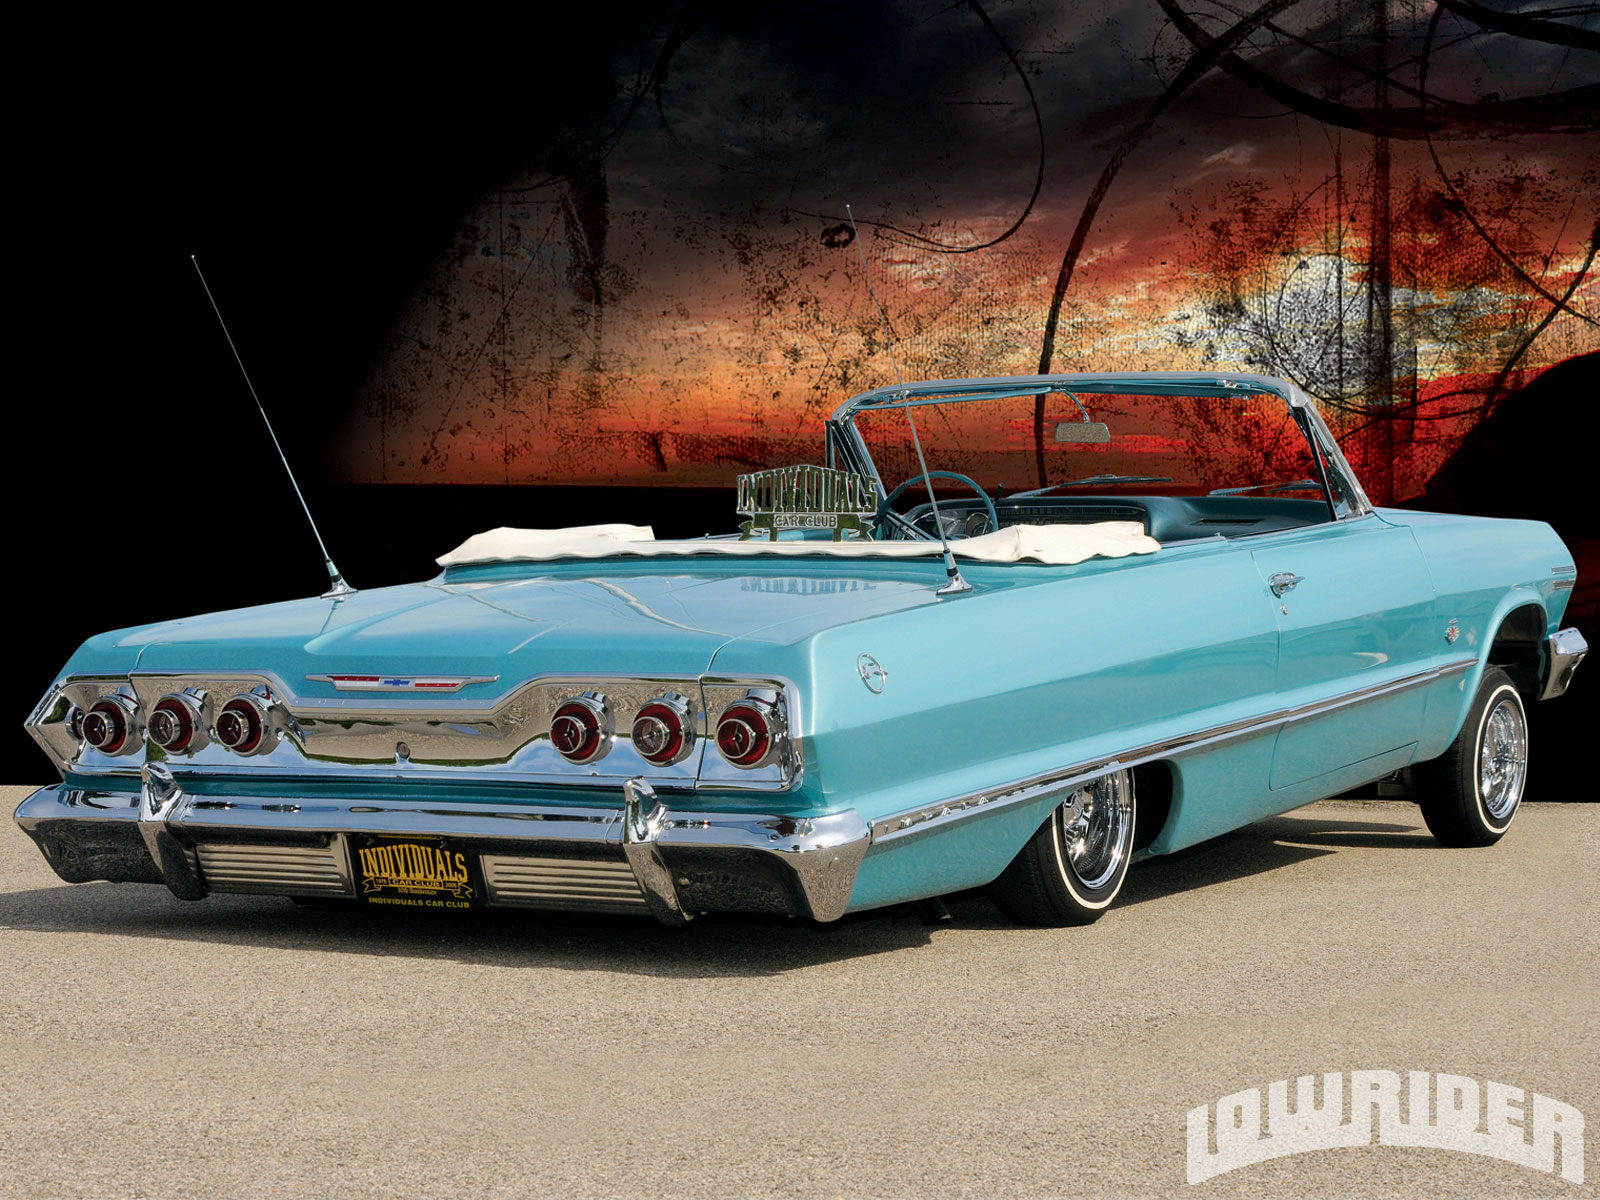 1963 Chevrolet Impala Wallpapers Vehicles Hq 1963 Chevrolet Impala Pictures 4k Wallpapers 2019